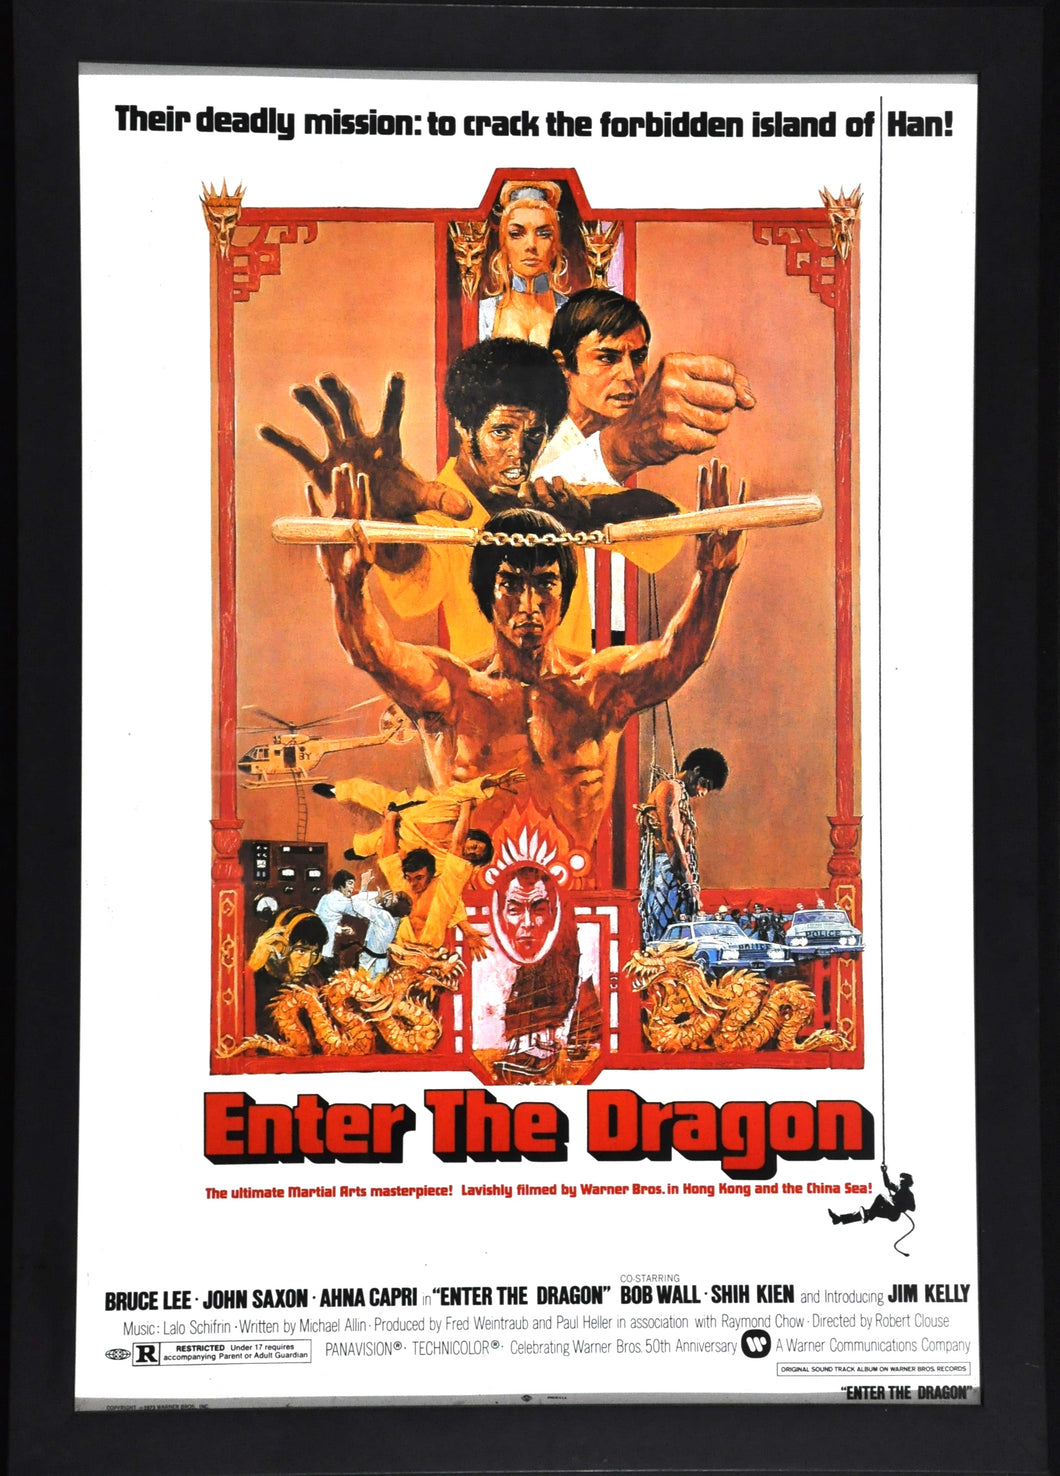 Bruce Lee Martial arts Karate master Framed poster from the Enter the Dragon movie